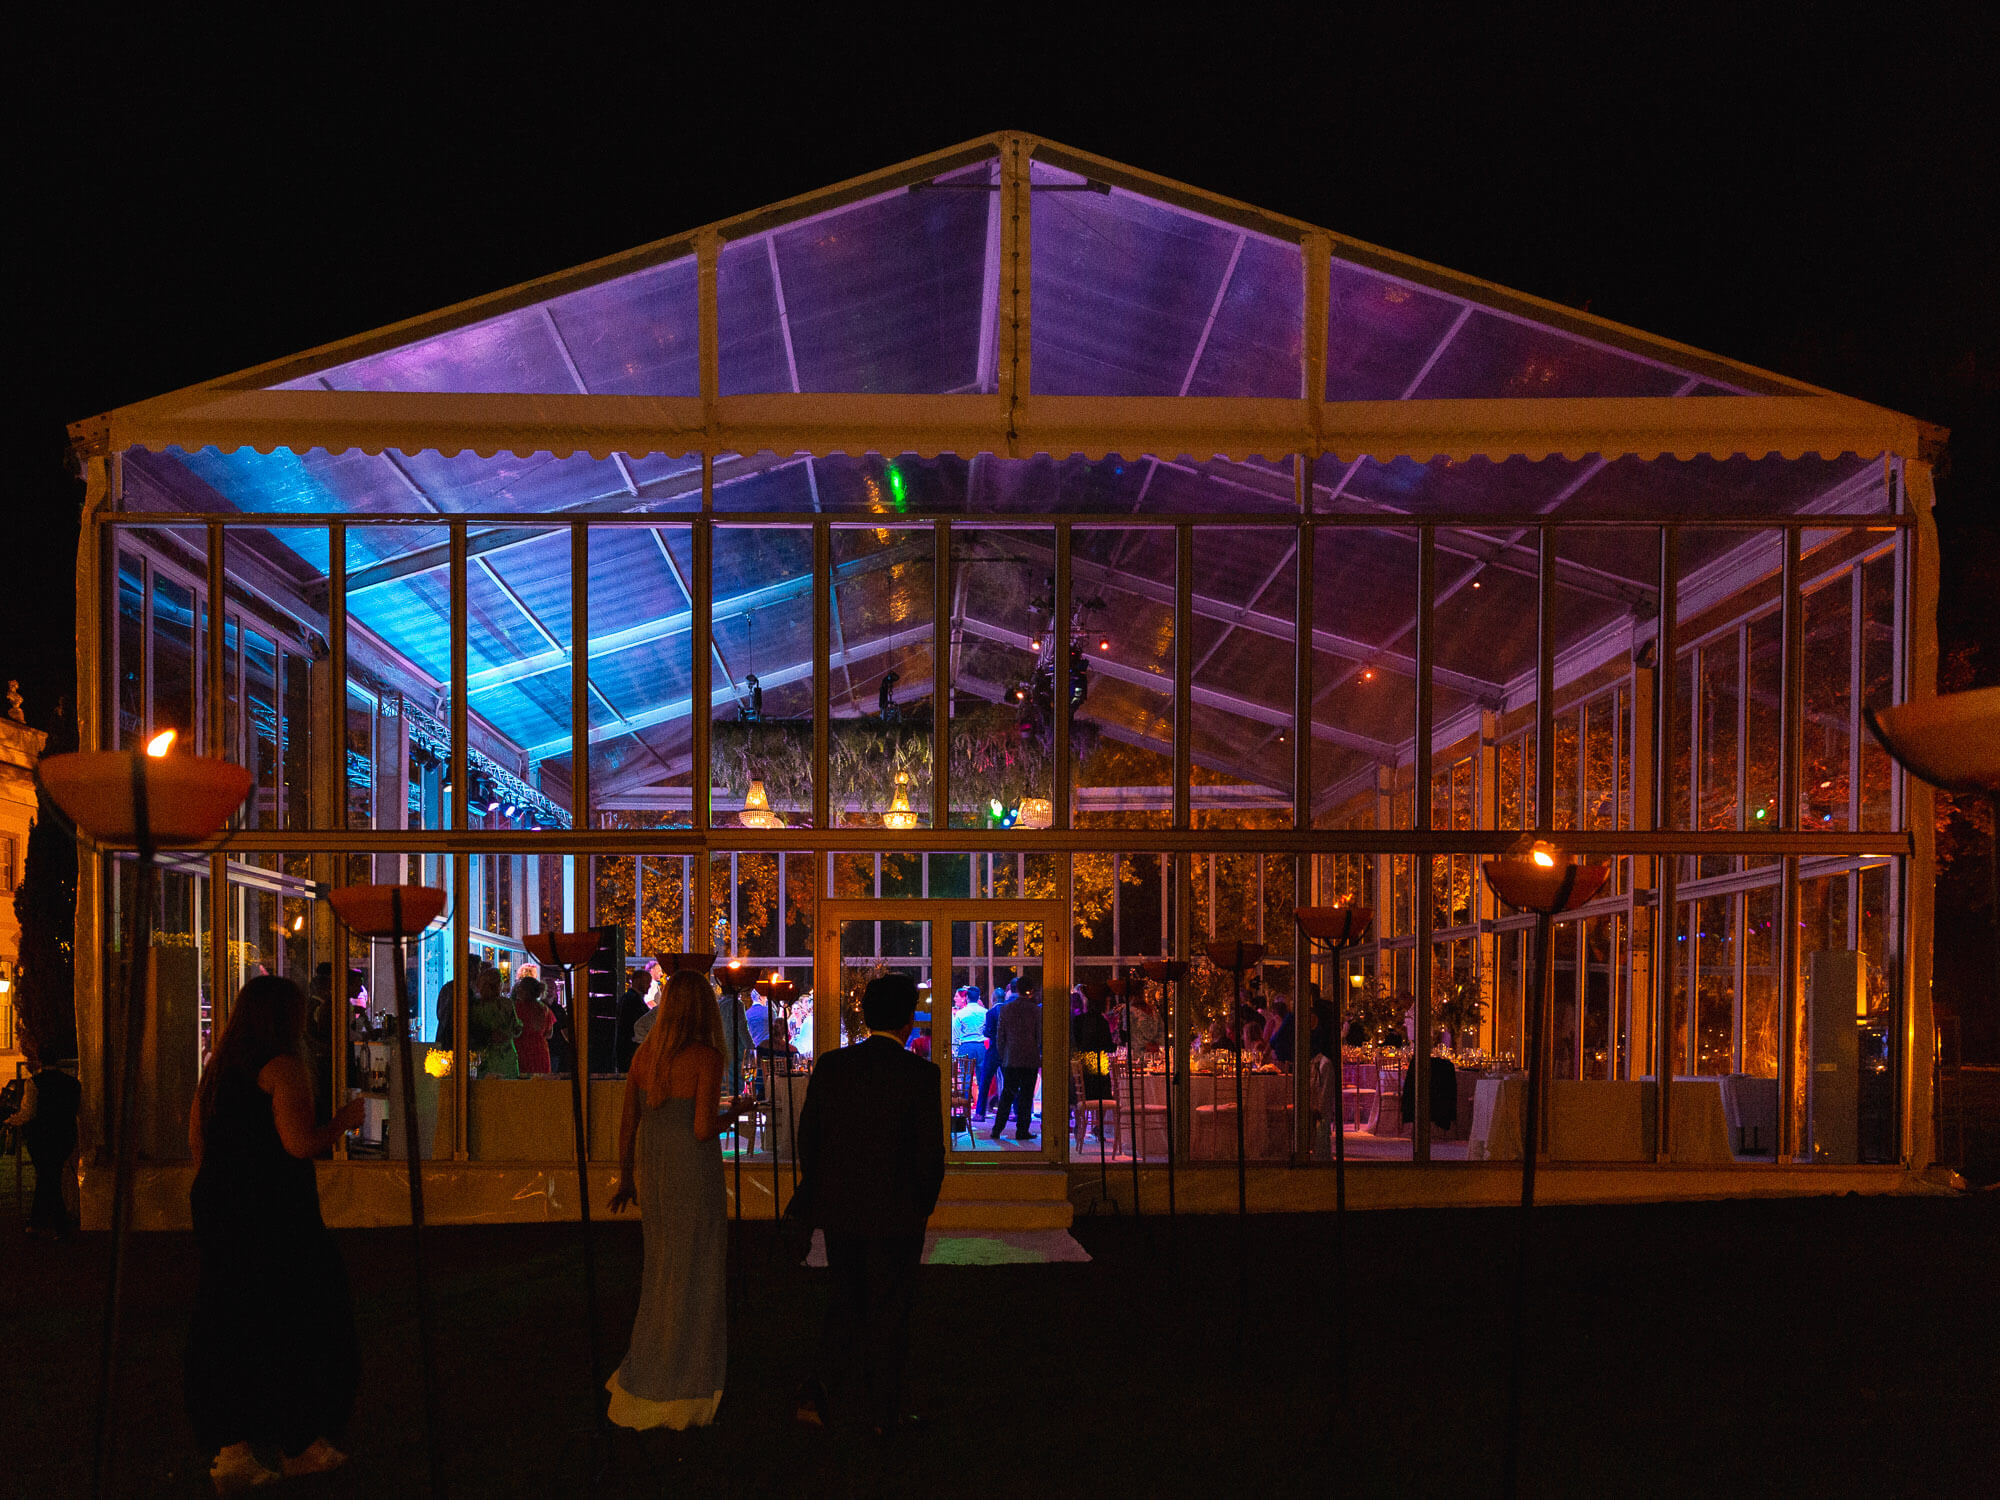 transparent wedding reception tent by night by Portugal Wedding Photographer